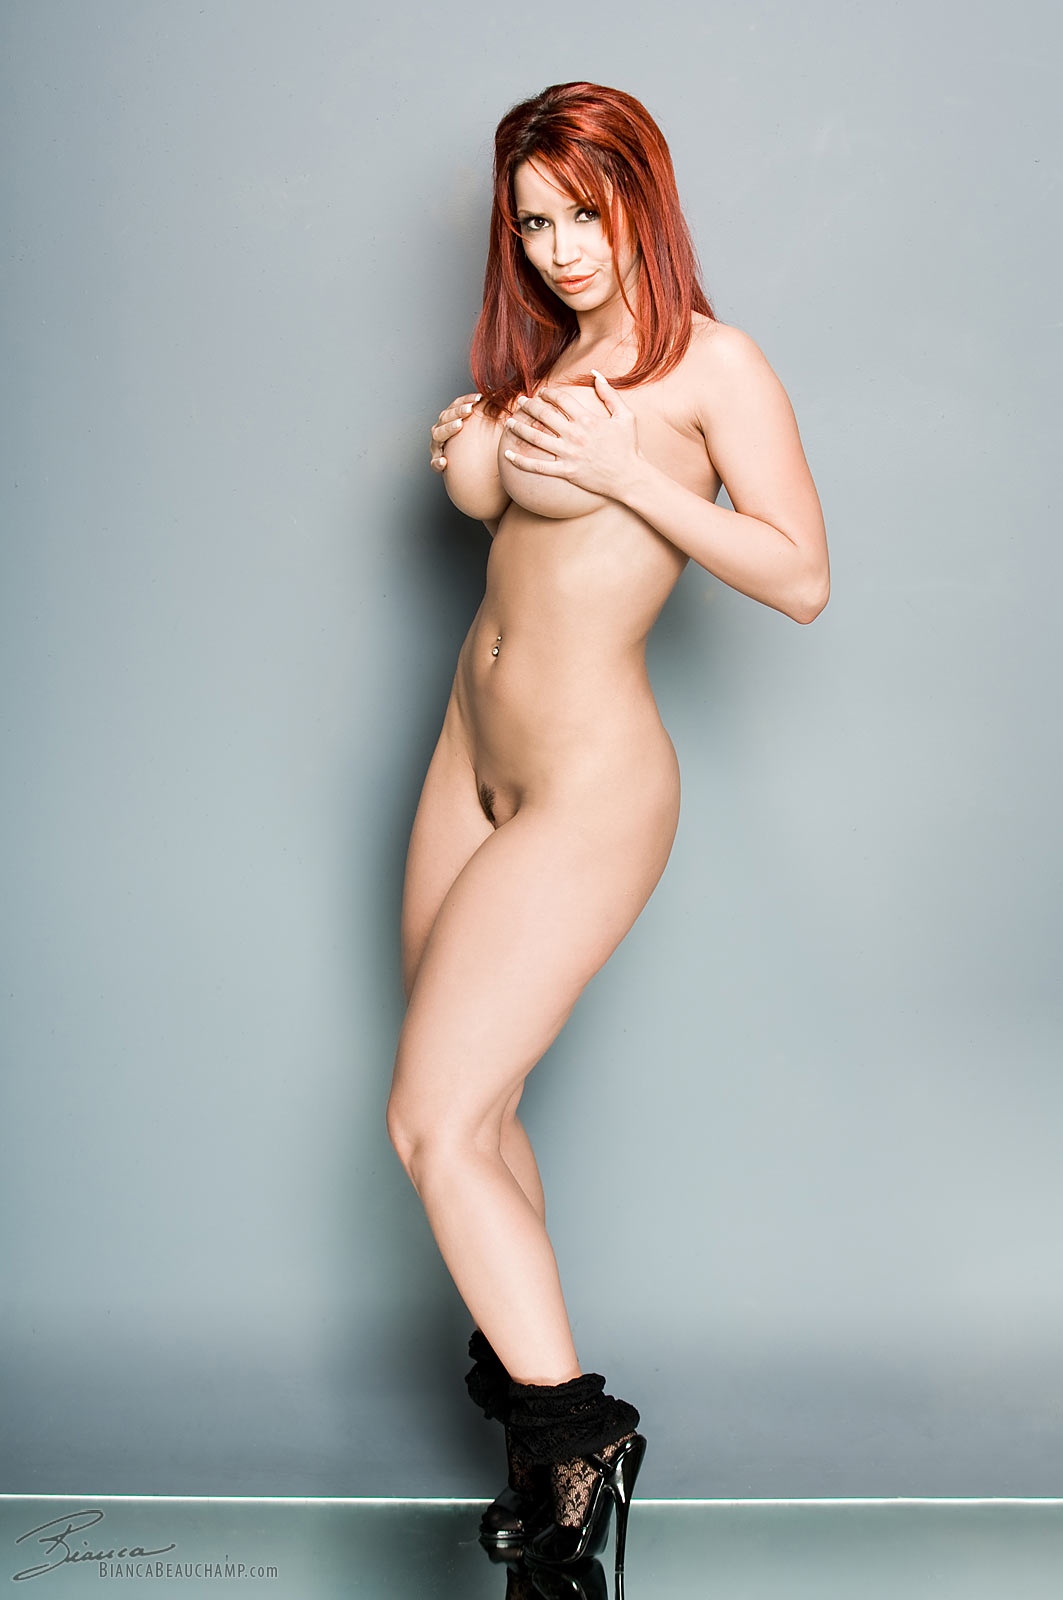 Bianca beauchamp video sexy